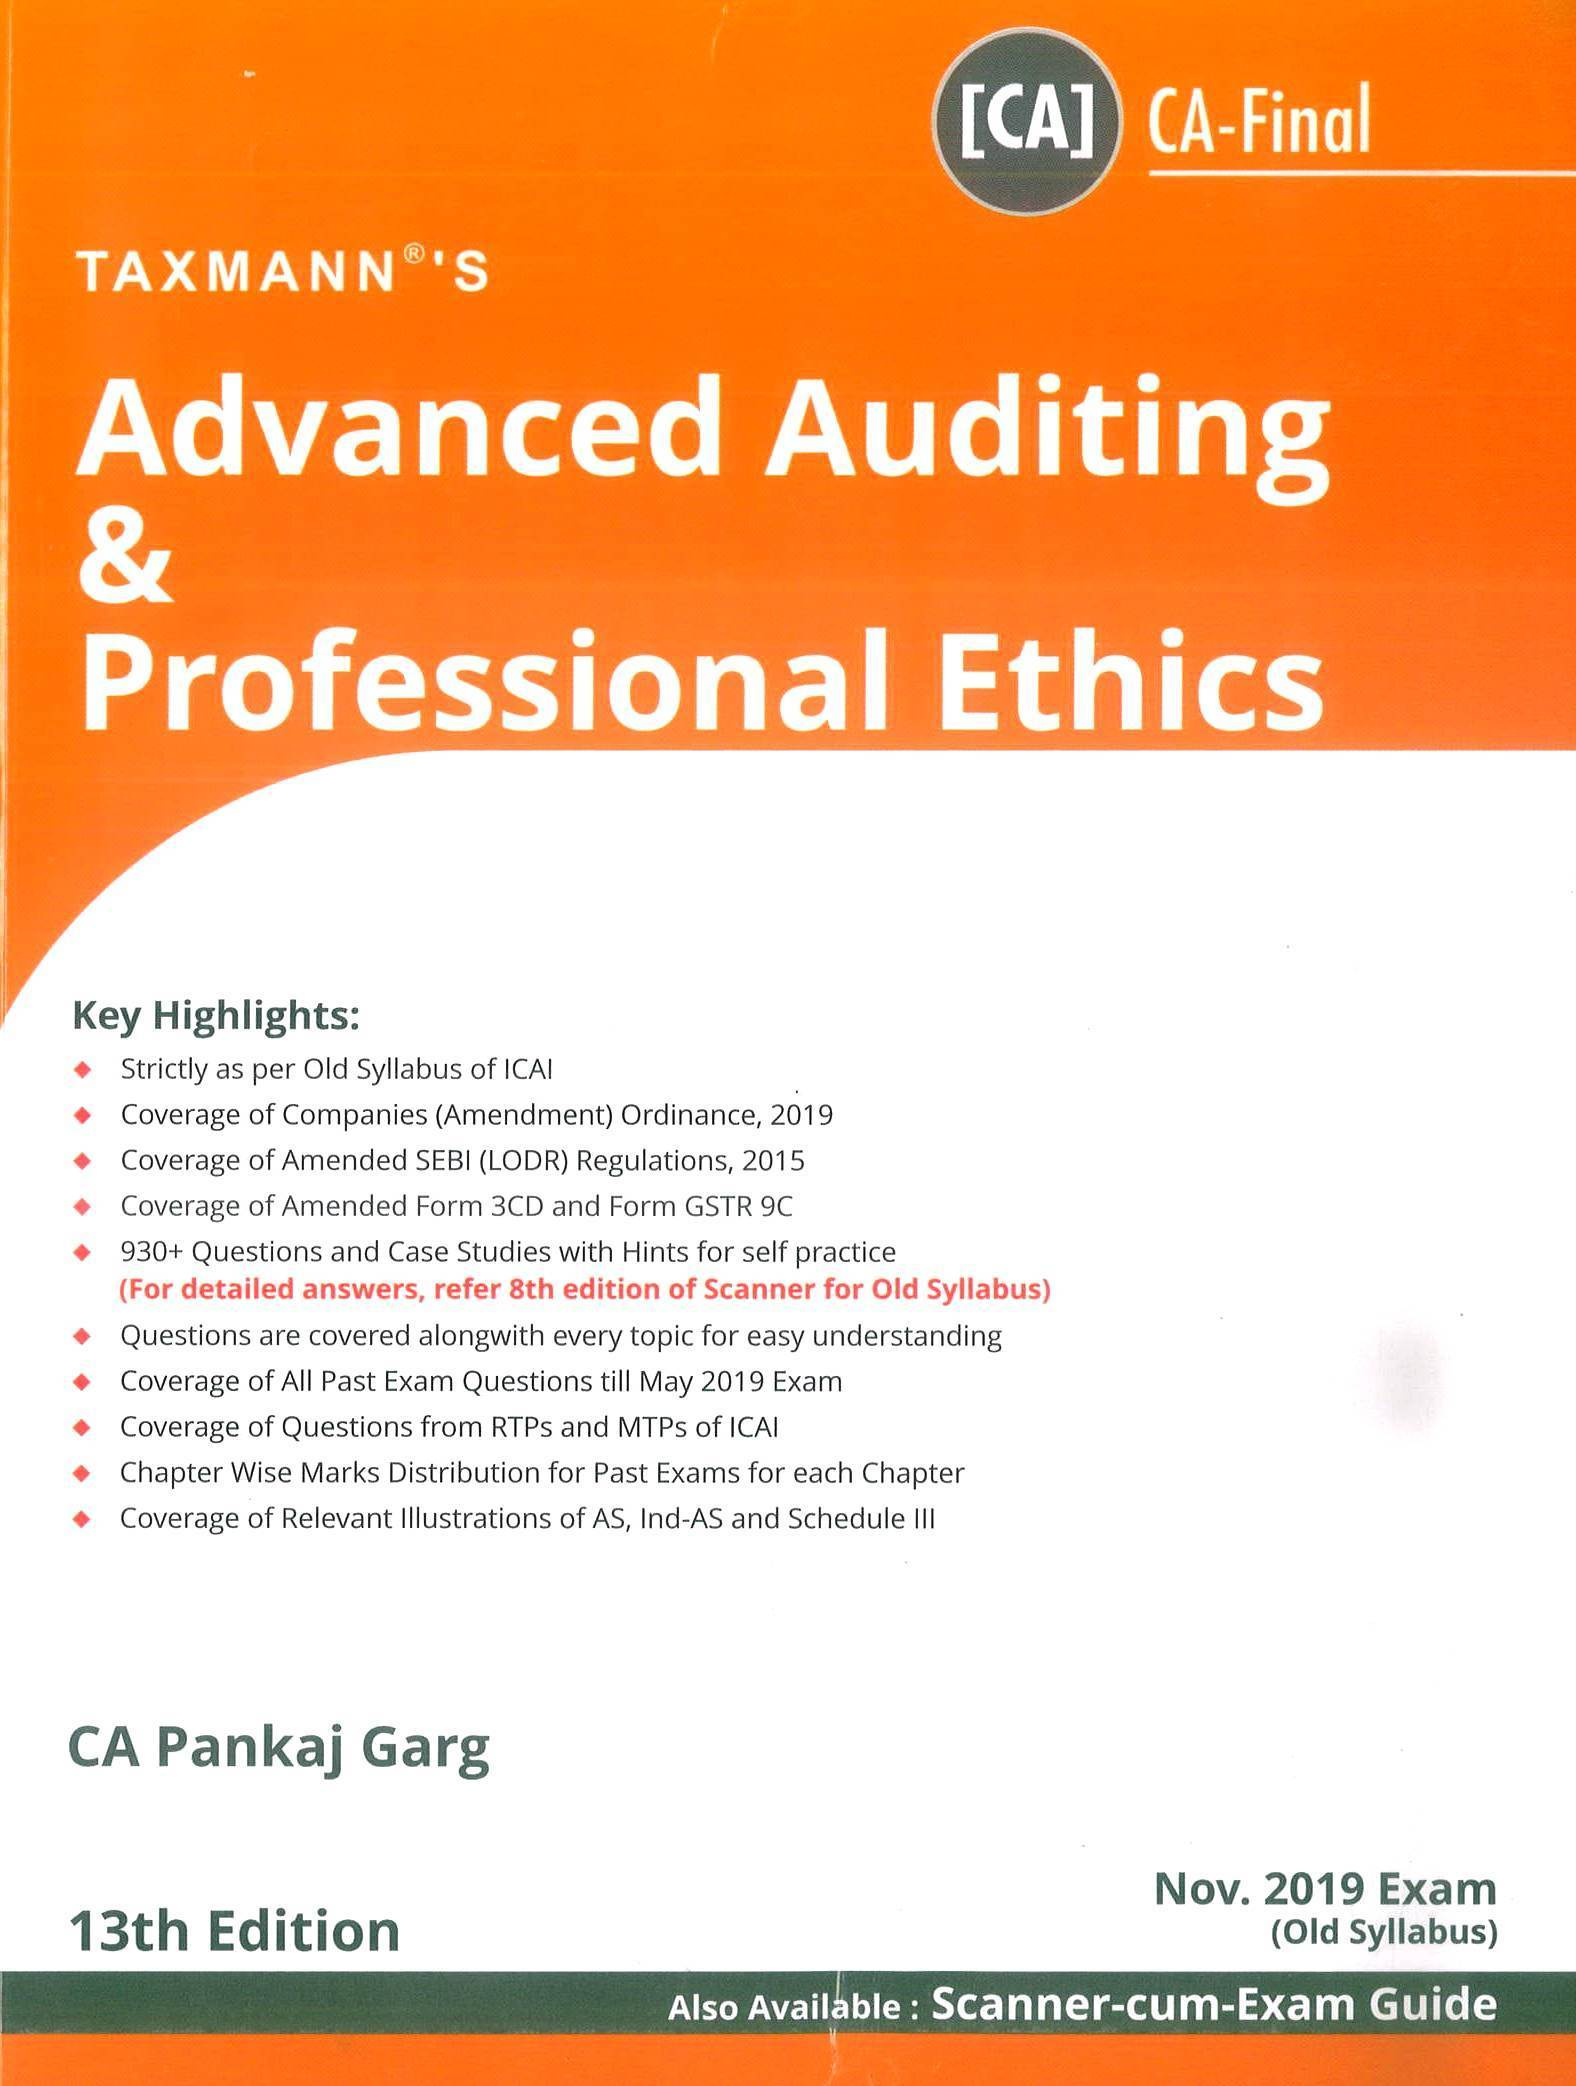 Taxmann CA Final Advanced Auditing & Professional Ethics Old Syllabus By Pankaj Garg Applicable for November 2019 Exam